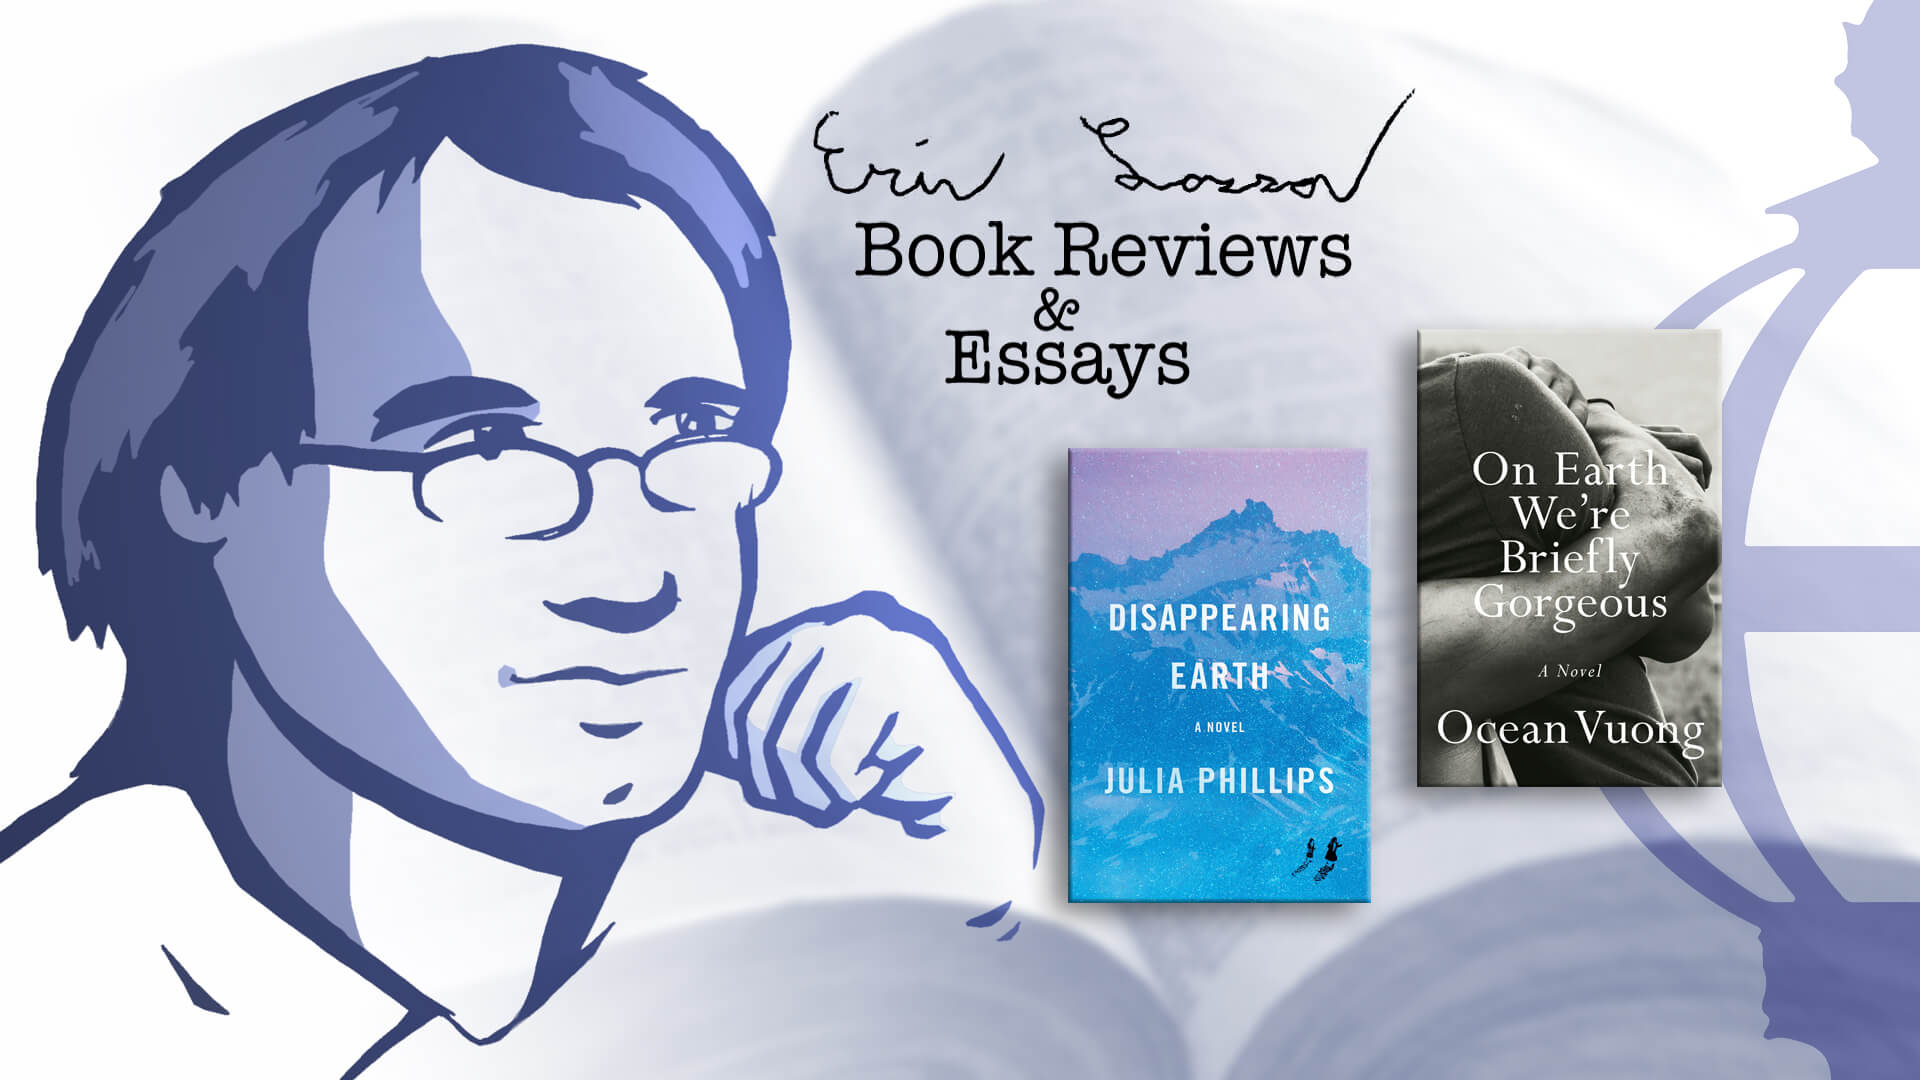 Erin Larson Book Reviews and Essays